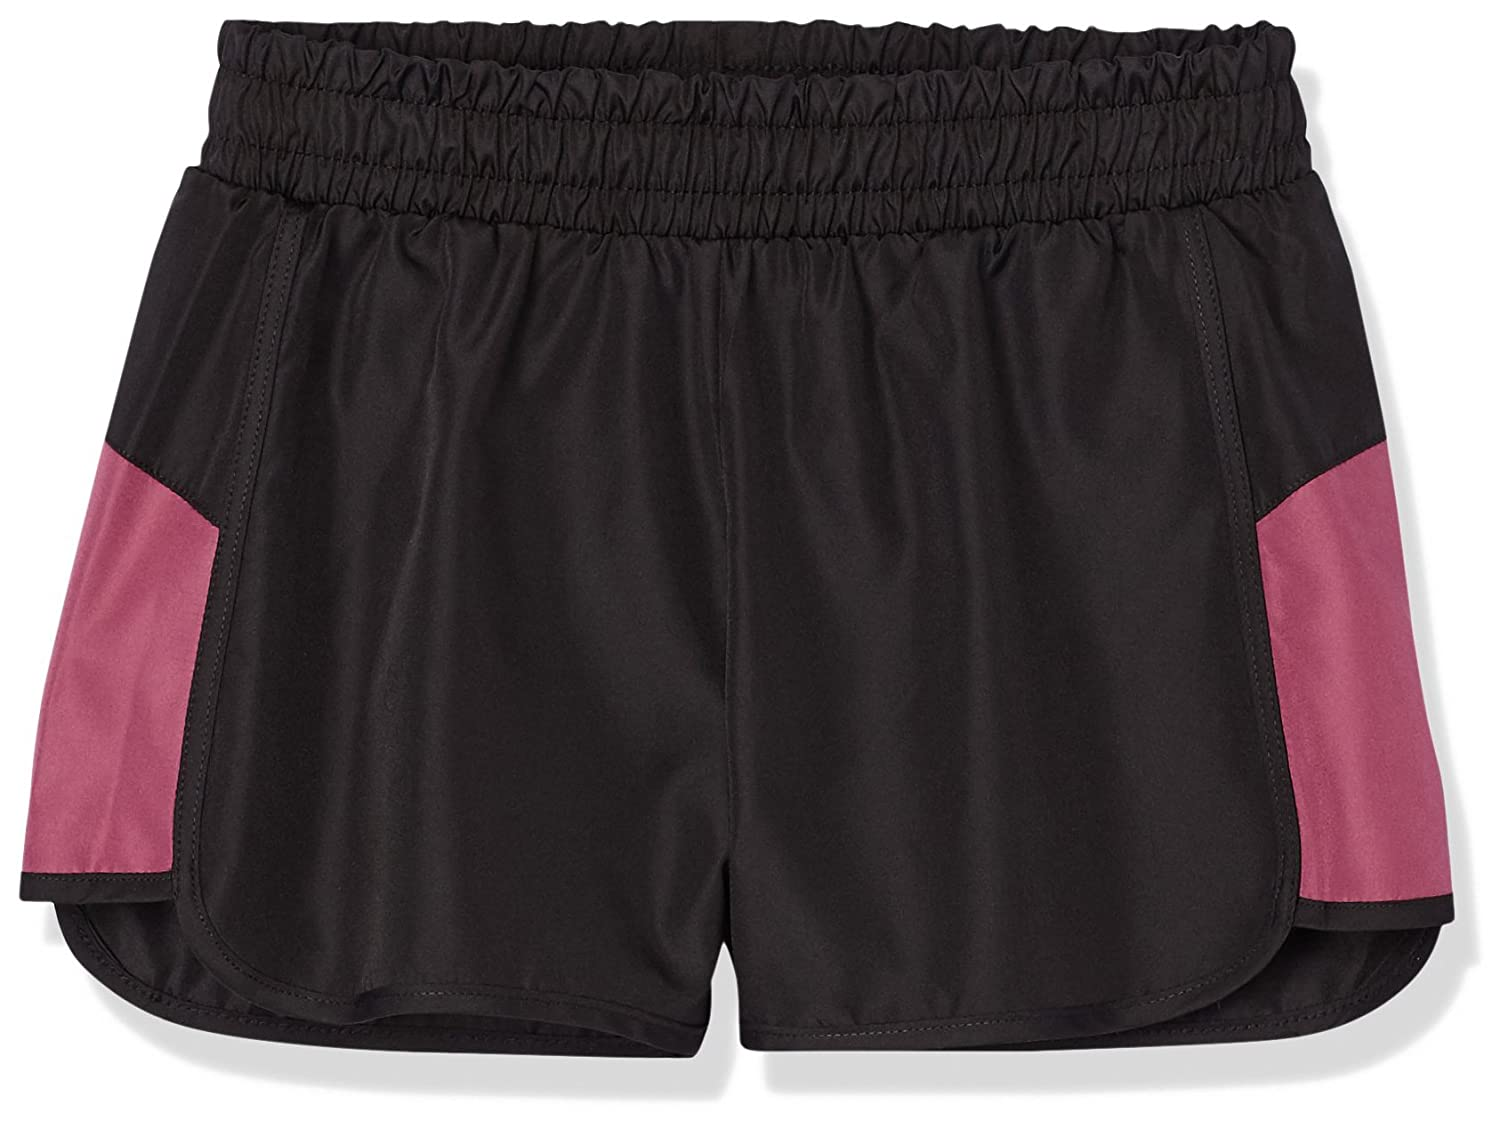 RED WAGON Girl's Sports Shorts SFP5-G04